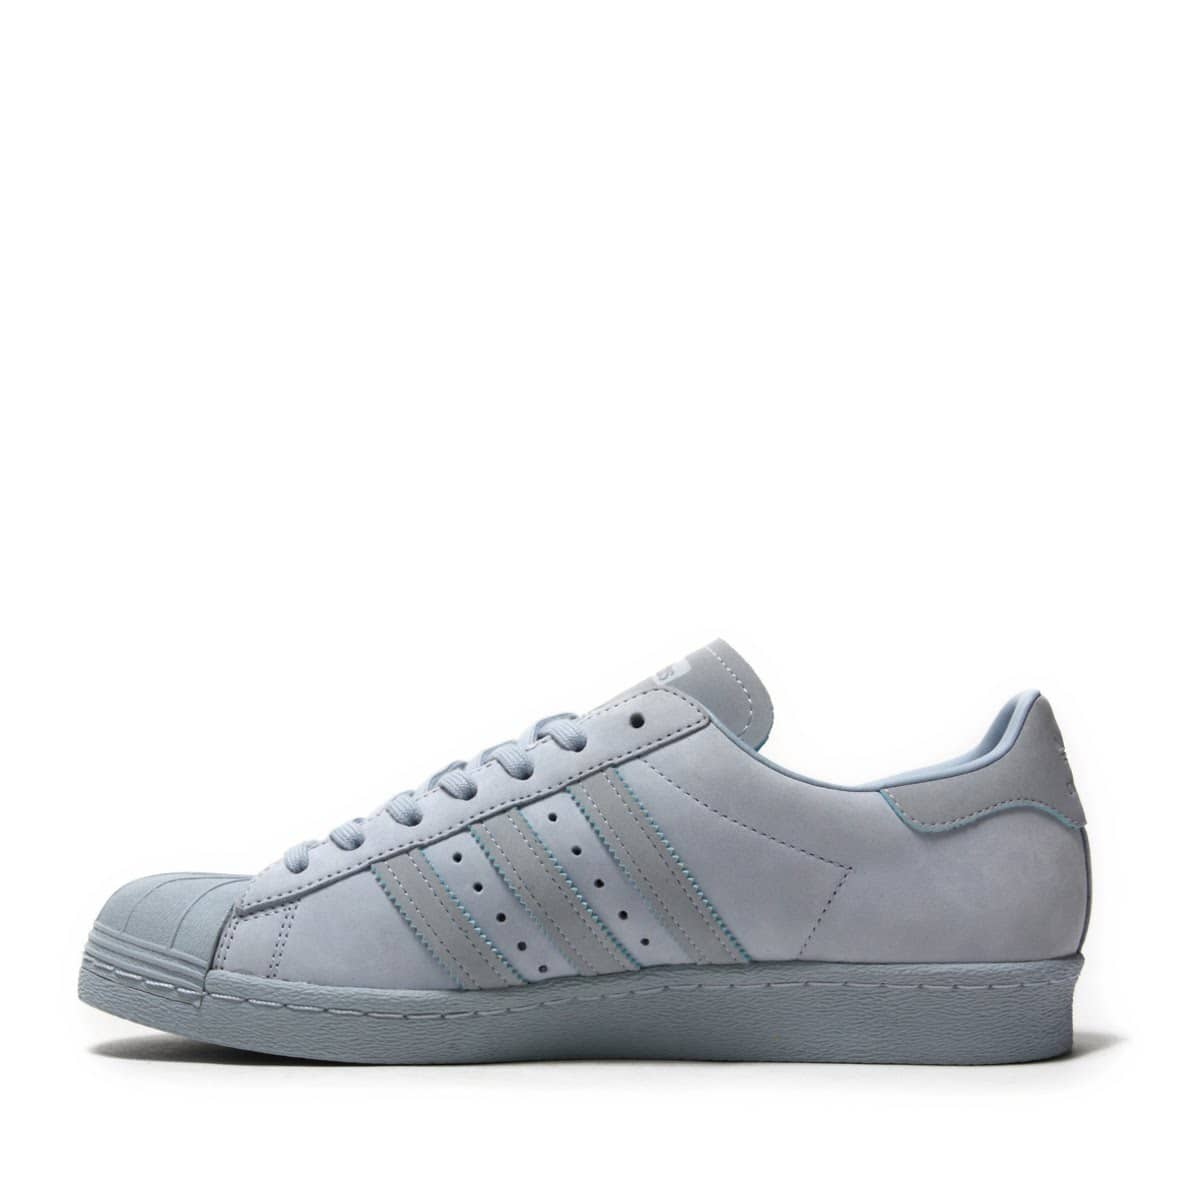 lowest price cb7f2 3bf71 adidas Originals SUPERSTAR 80s Aero Blue/Aero Blue/Aero Blue